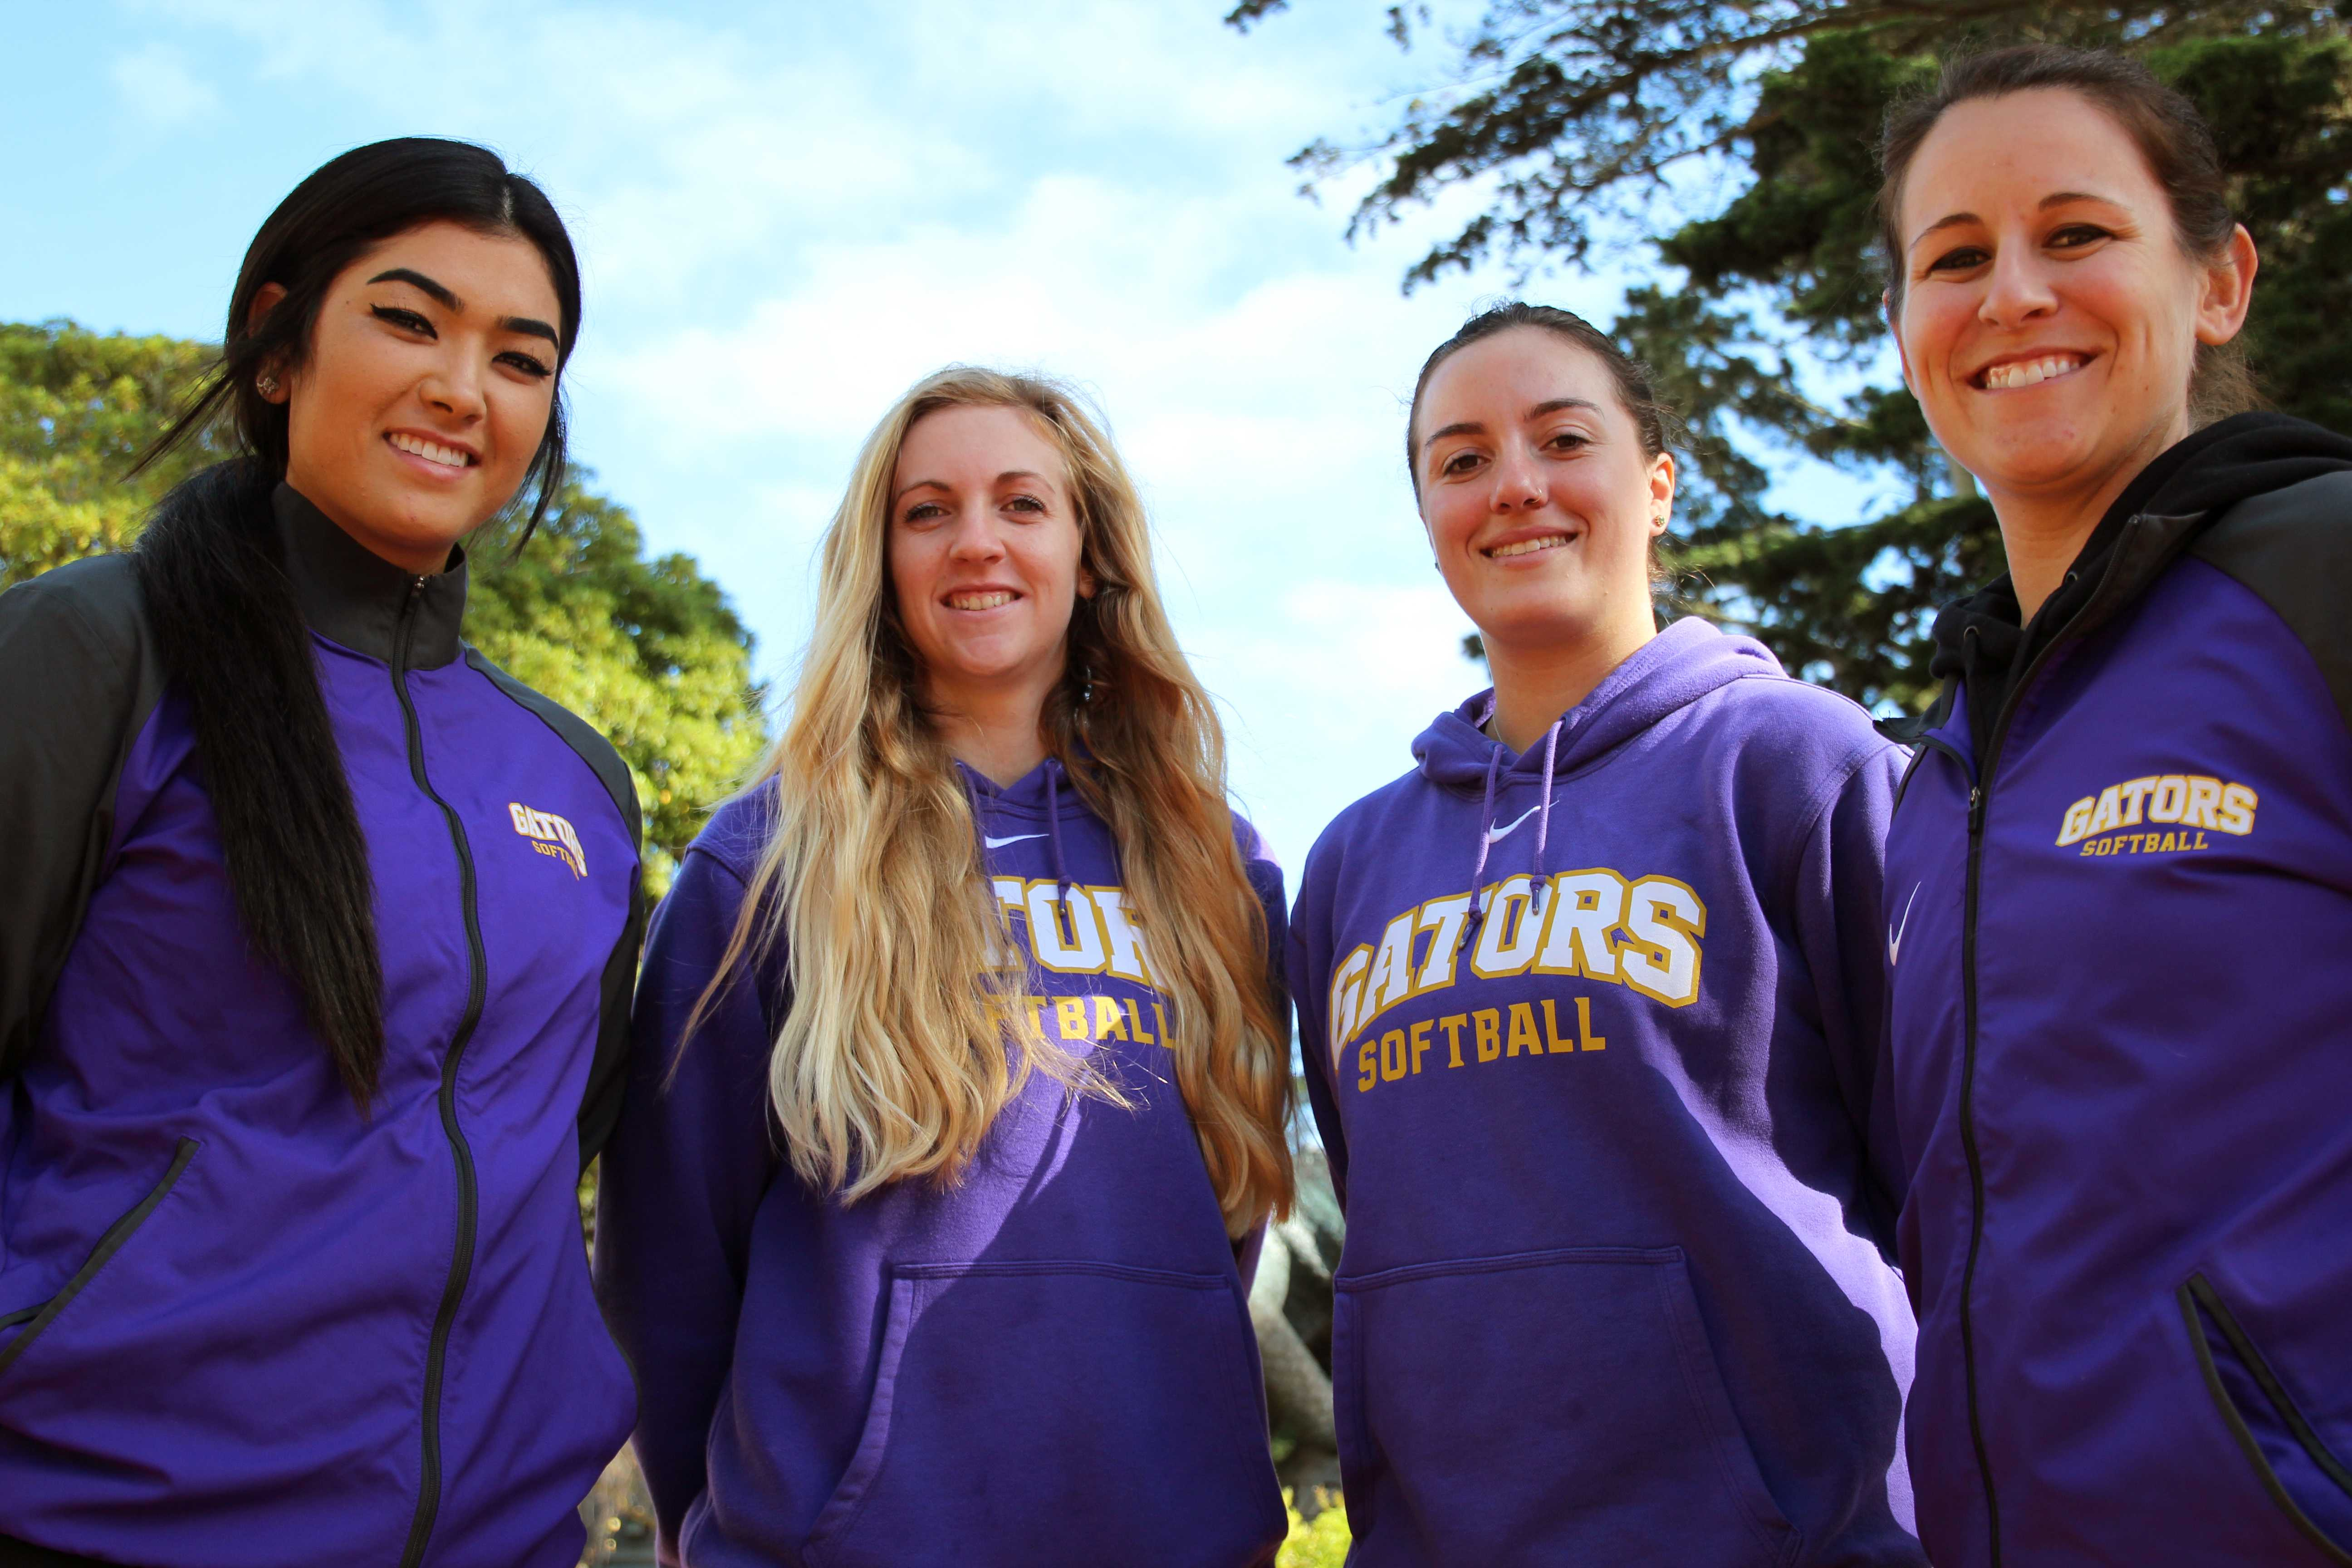 SFSU Softball third baseman Sara Higa (left), pitcher Lindsey Cassidy, outfielder Mallory Cleveland and coach Alicia Reid pose for a portrait outside the Gymnasium at SF State, Monday, Jan. 22, 2018.  Reid was previously head softball coach at Humboldt State University for 5 years before starting this past year at SFSU and said,